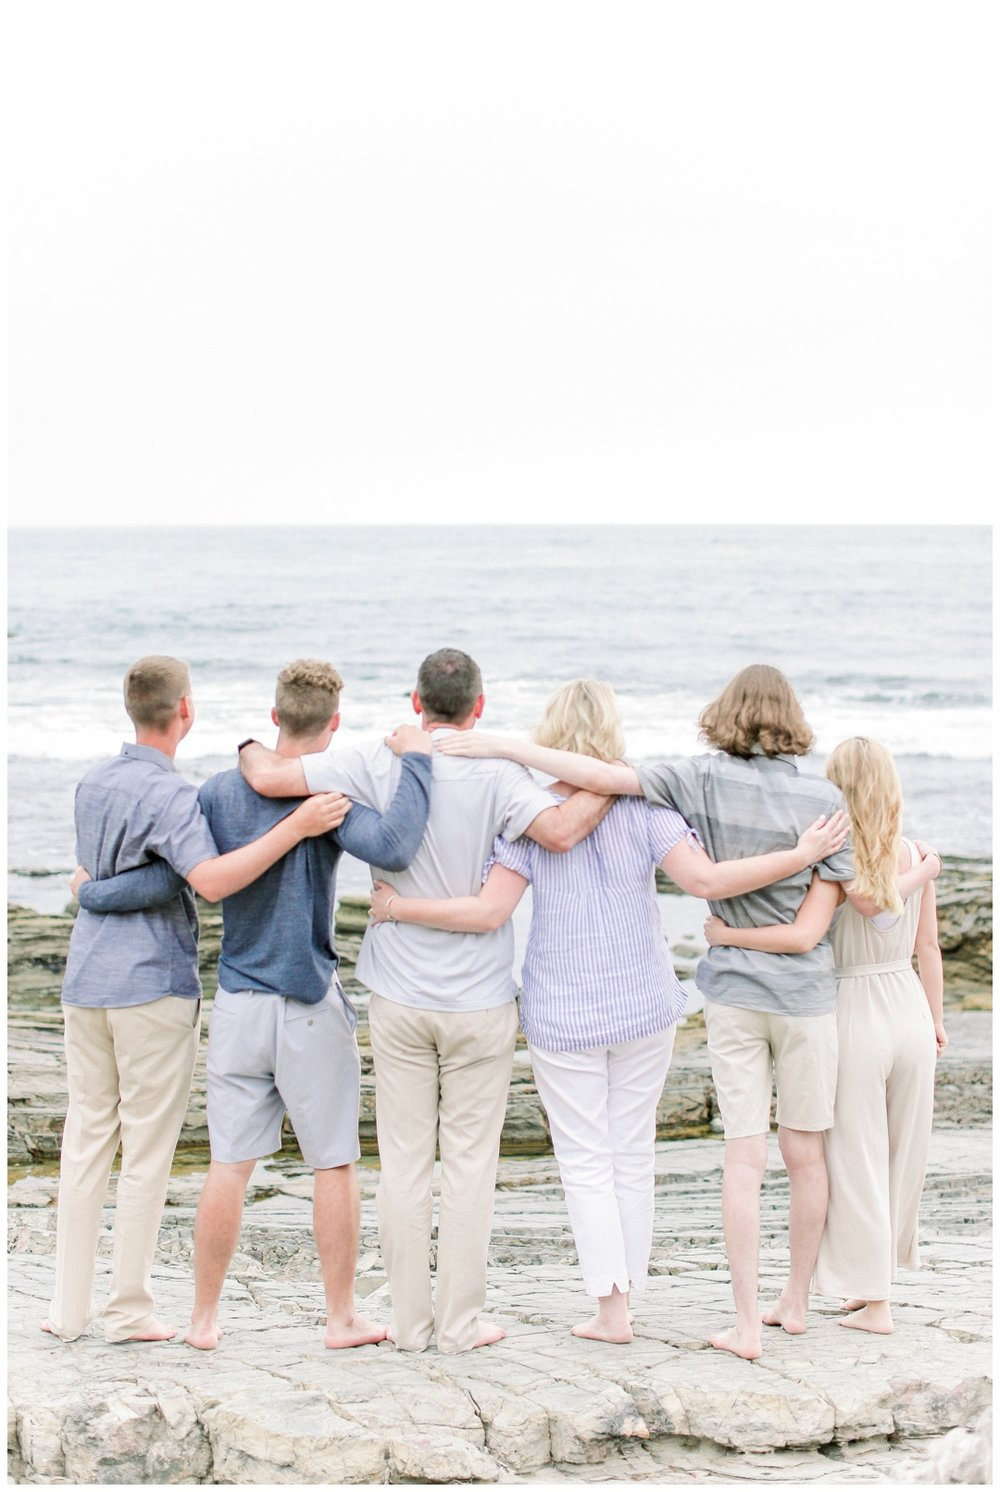 Newport_Beach_Family_Photographer_Orange_County_Family_Photography_Cori_Kleckner_Photography_Orange_County_Family_Photographer_Beach_Family_Session__1222.jpg